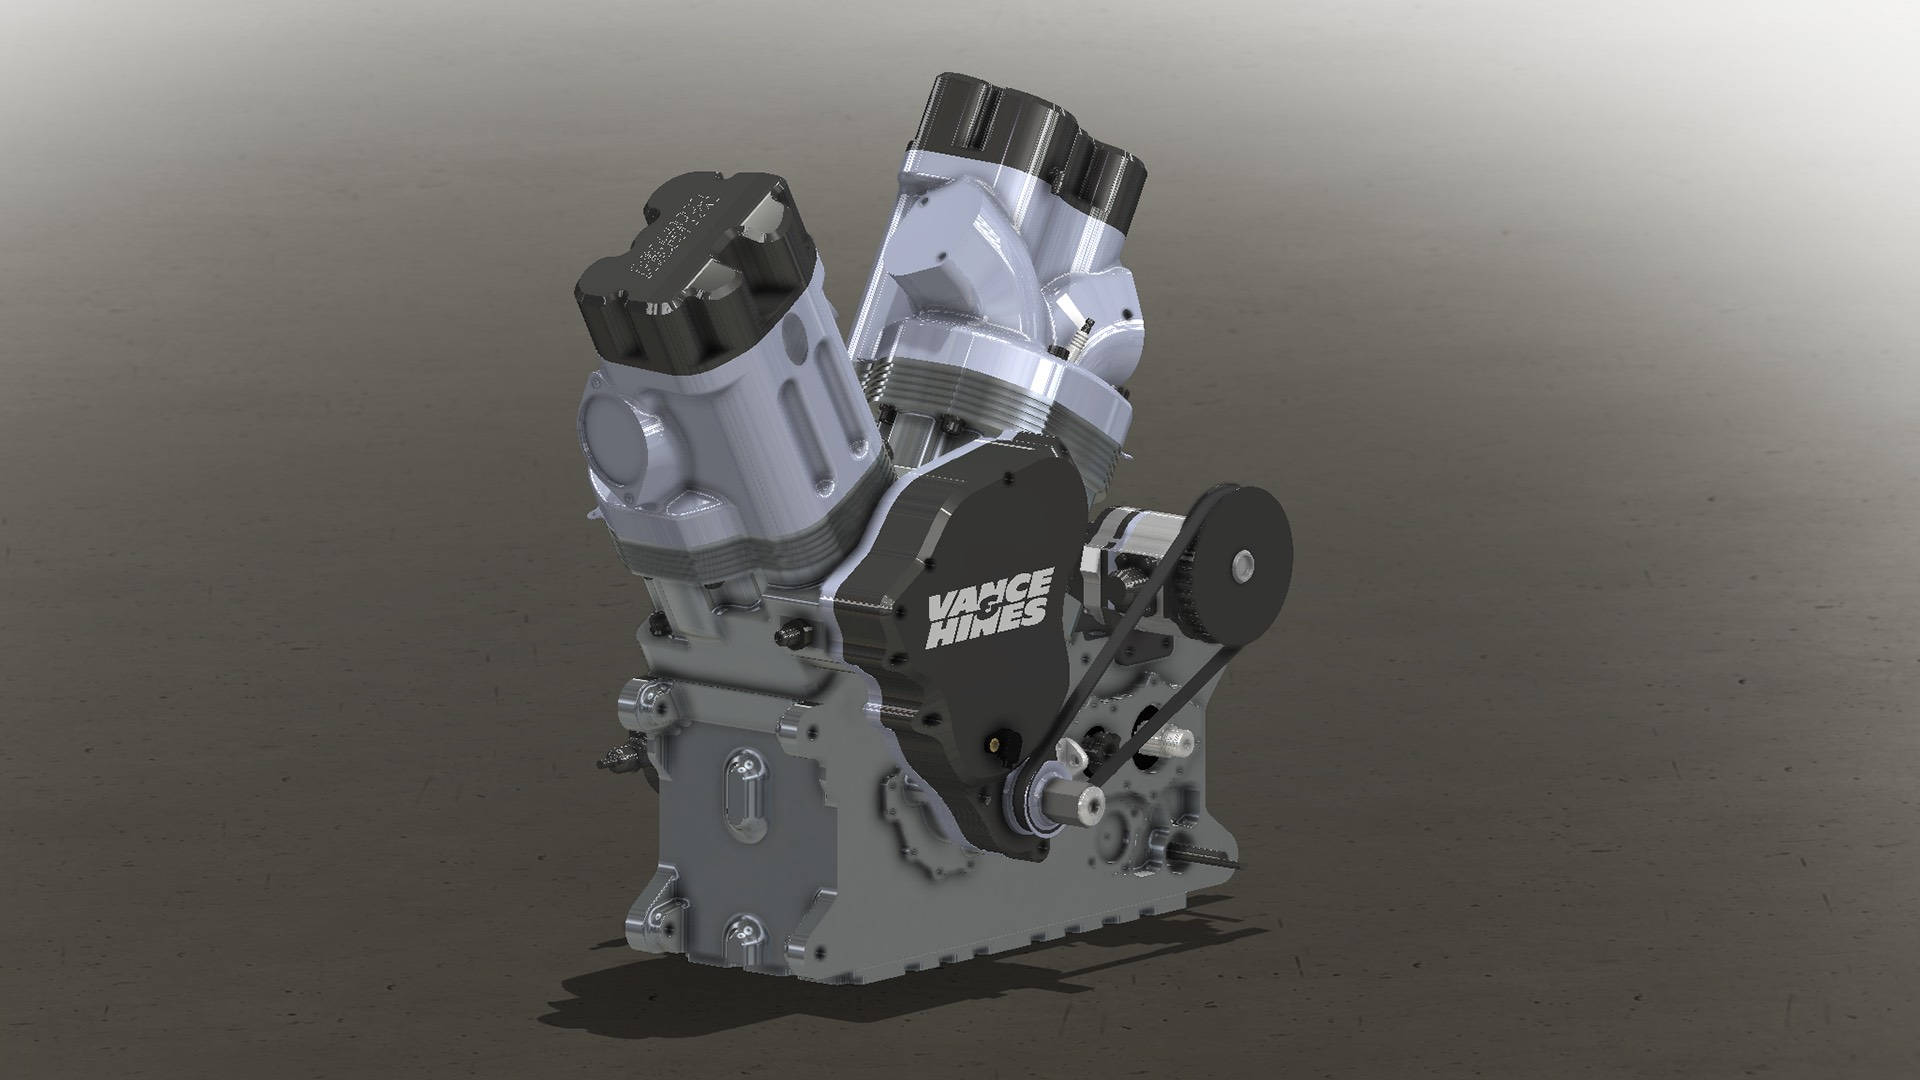 Vance & Hines Launches New V-Twin for NHRA Motorcycle Racing (1)